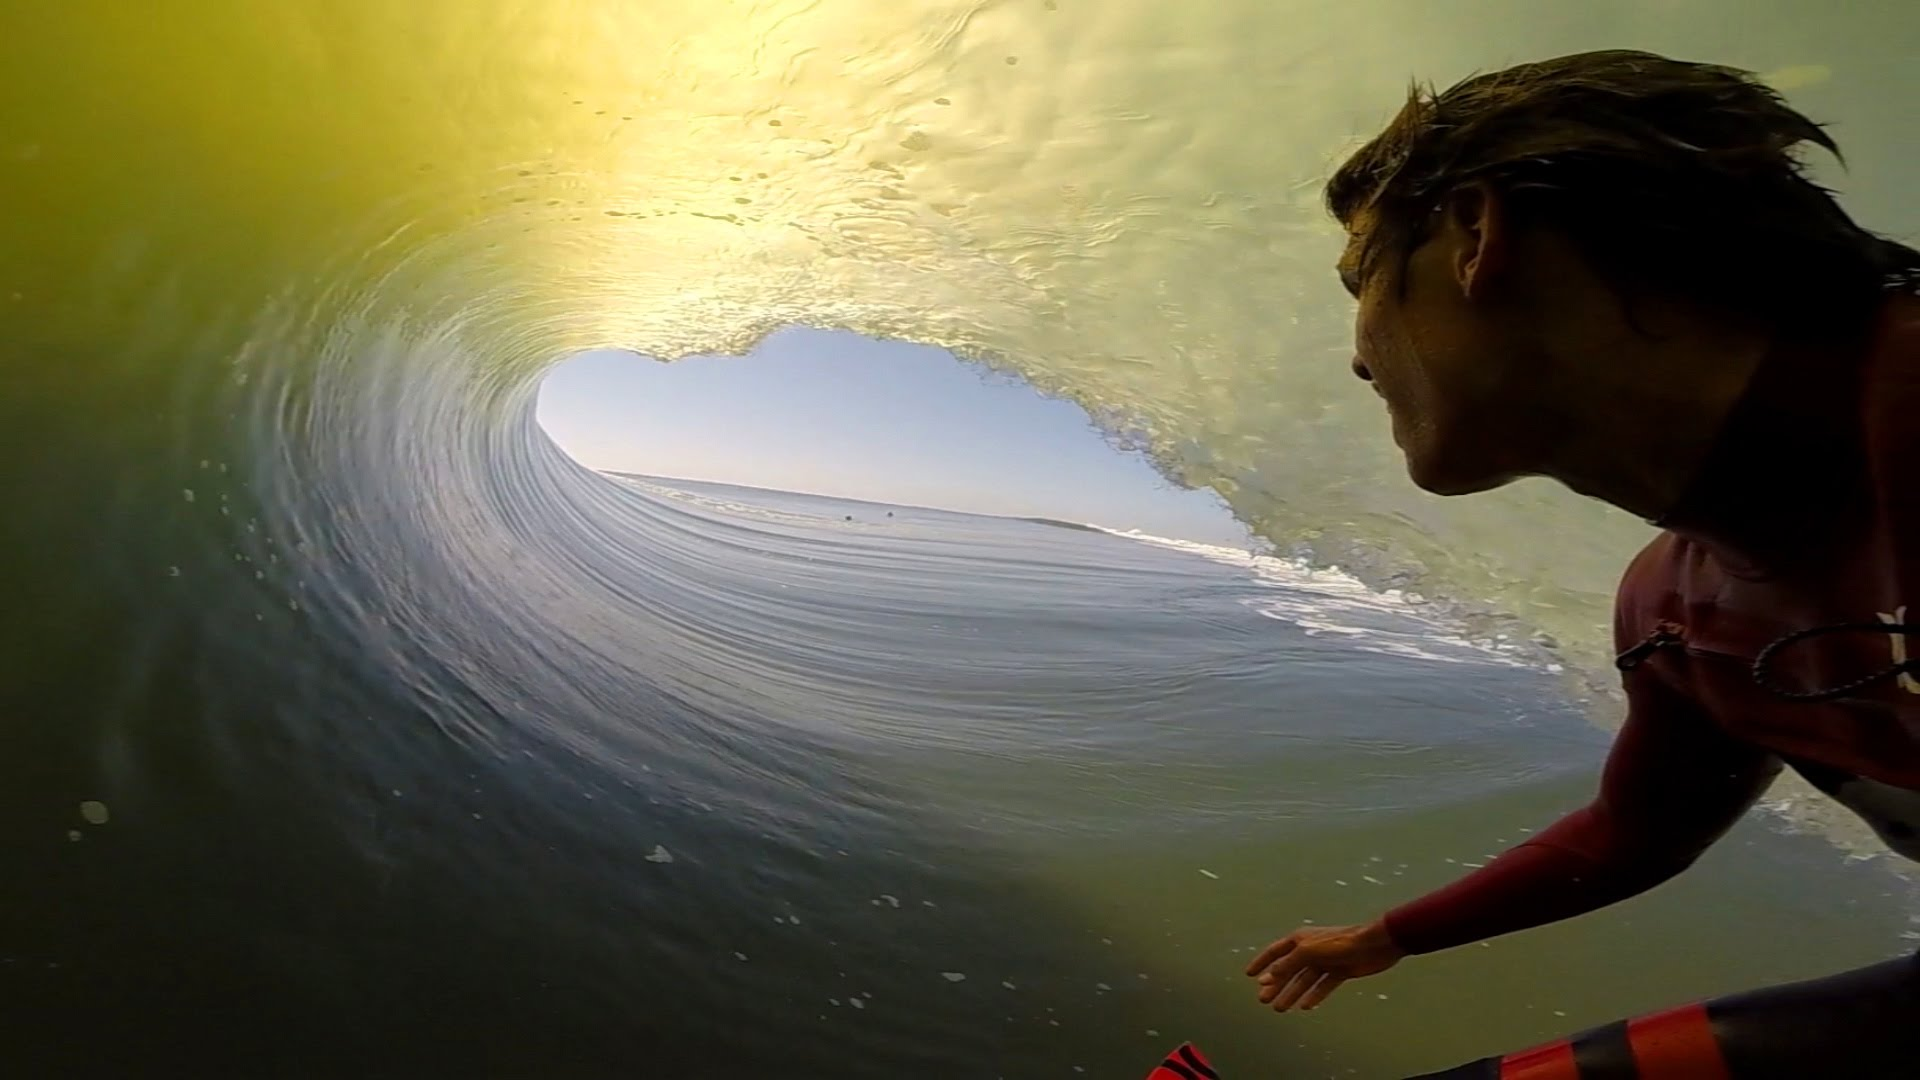 First-Person GoPro Video of a Surfer's Long Ride Inside the Tube of a Wave